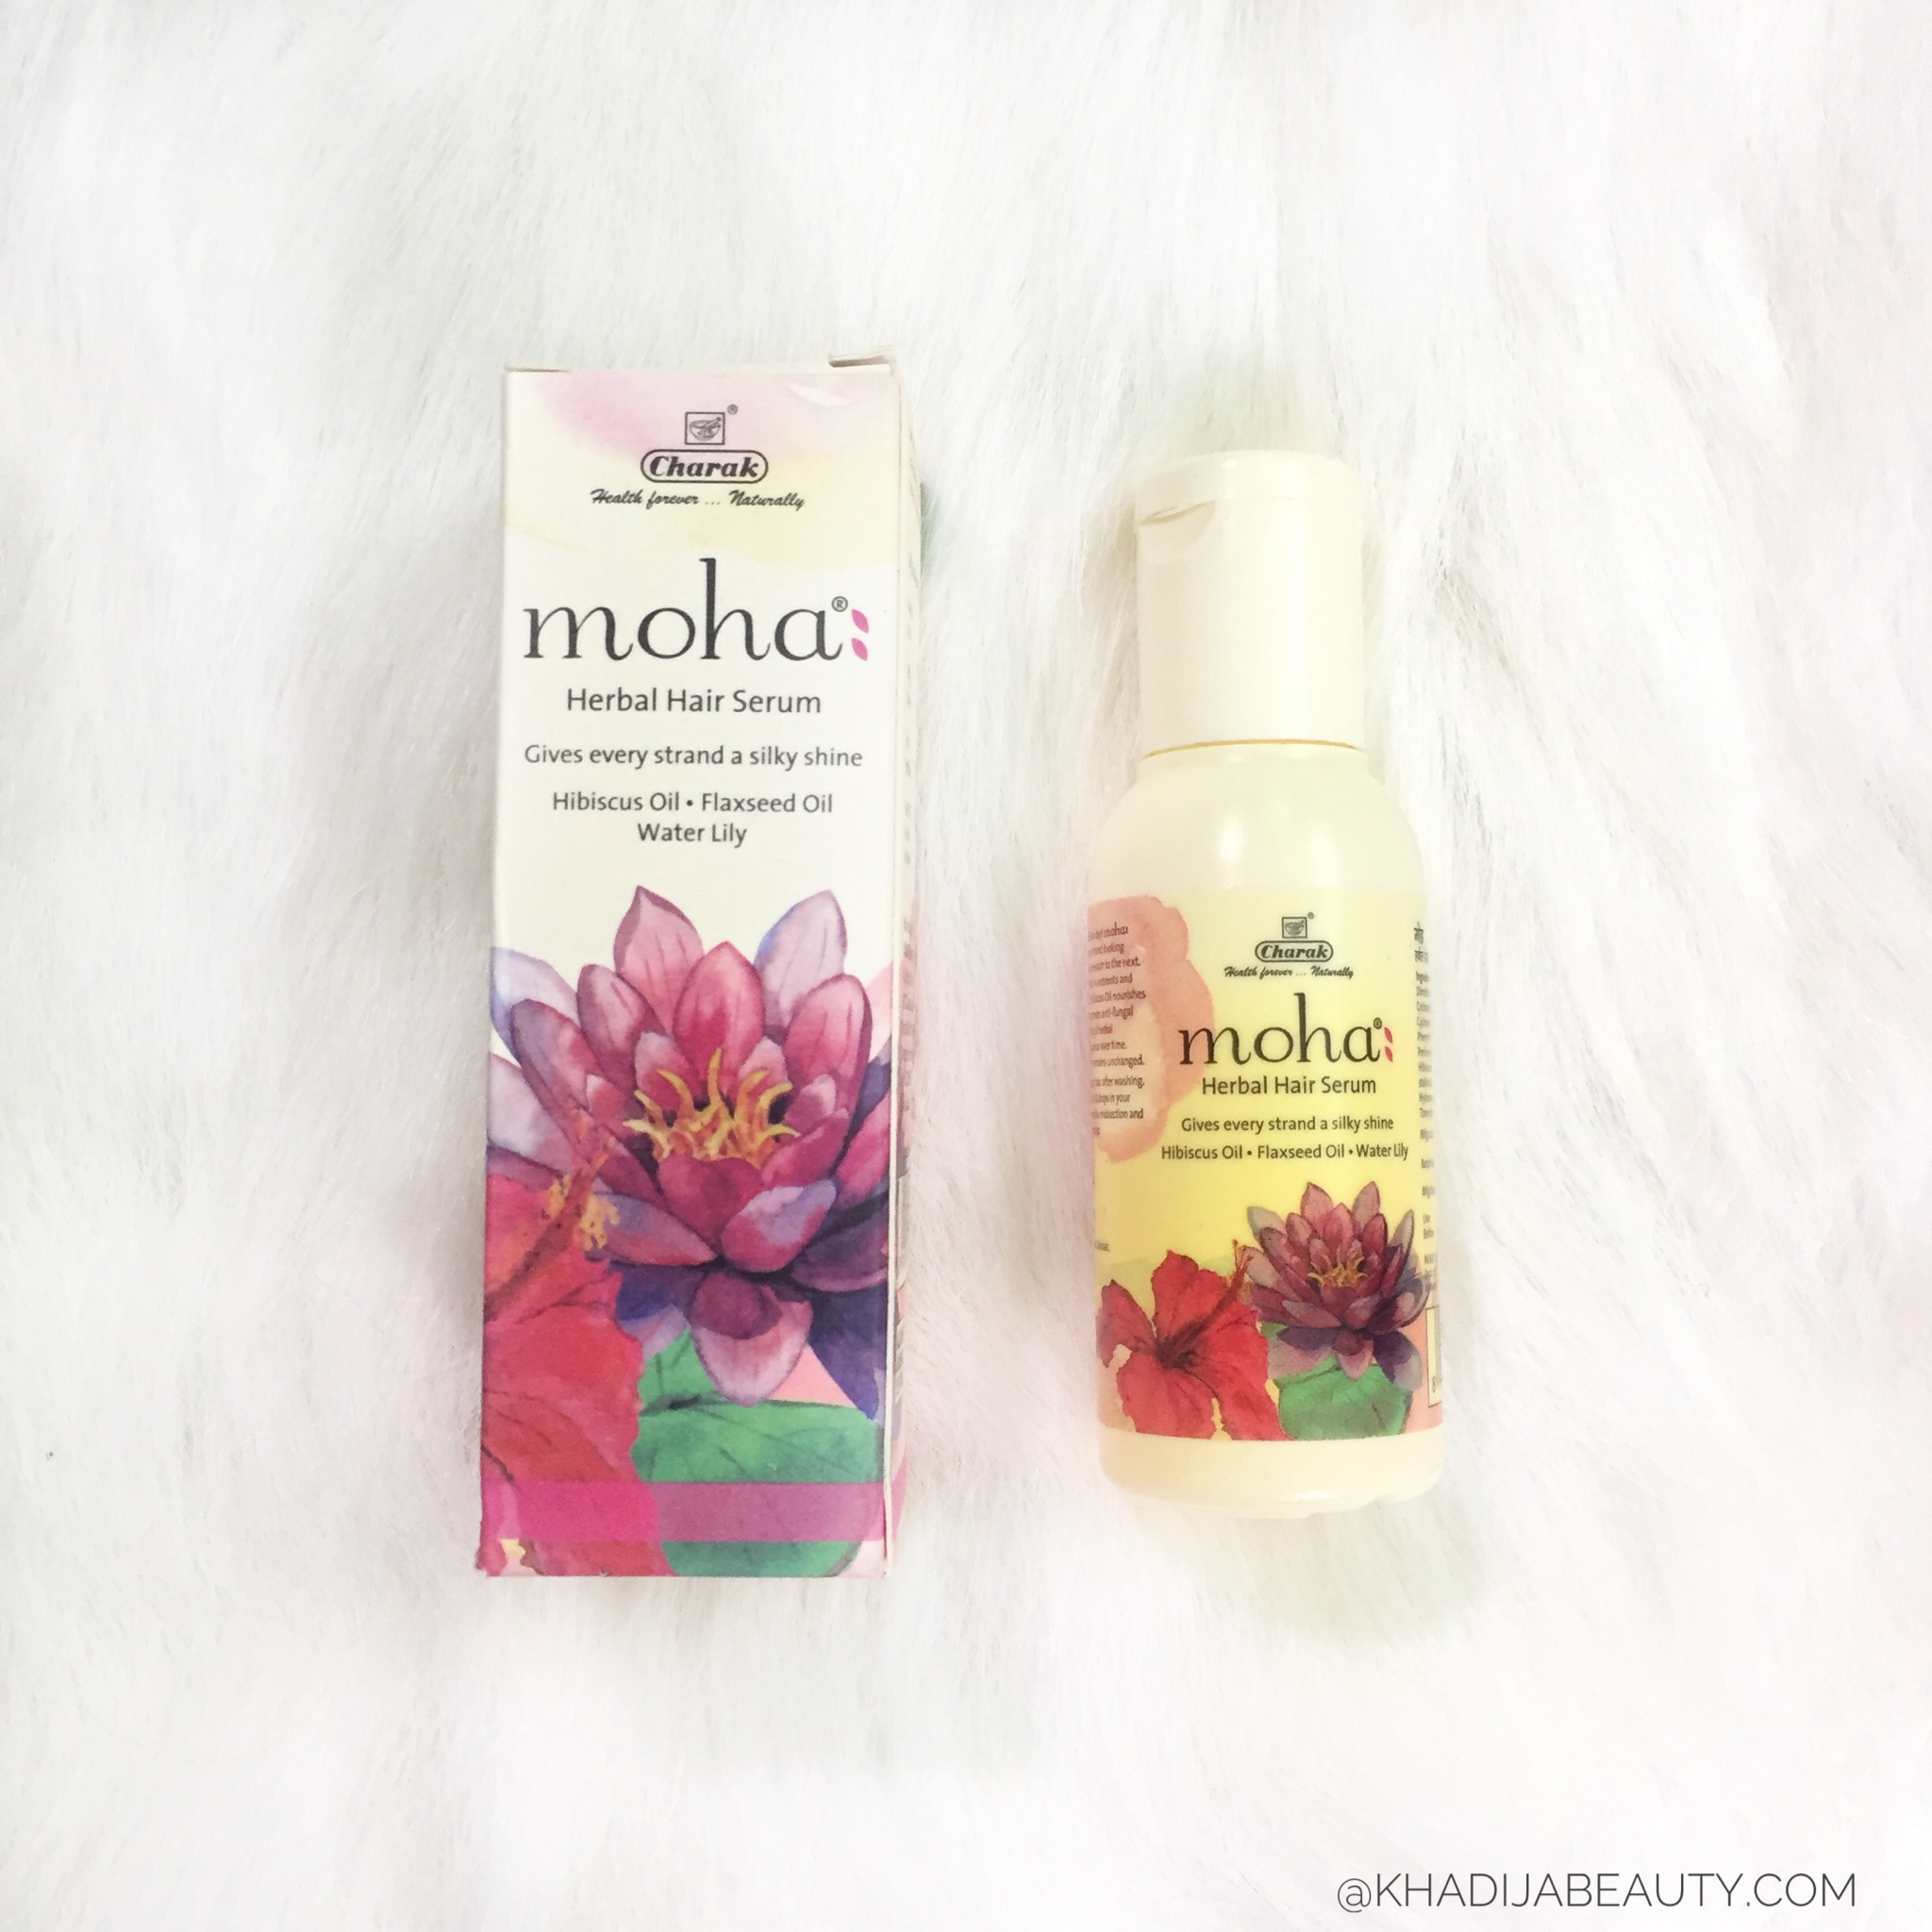 moha 5 in 1 hair oil review, moha herbal hair serum reiew, khadja beauty